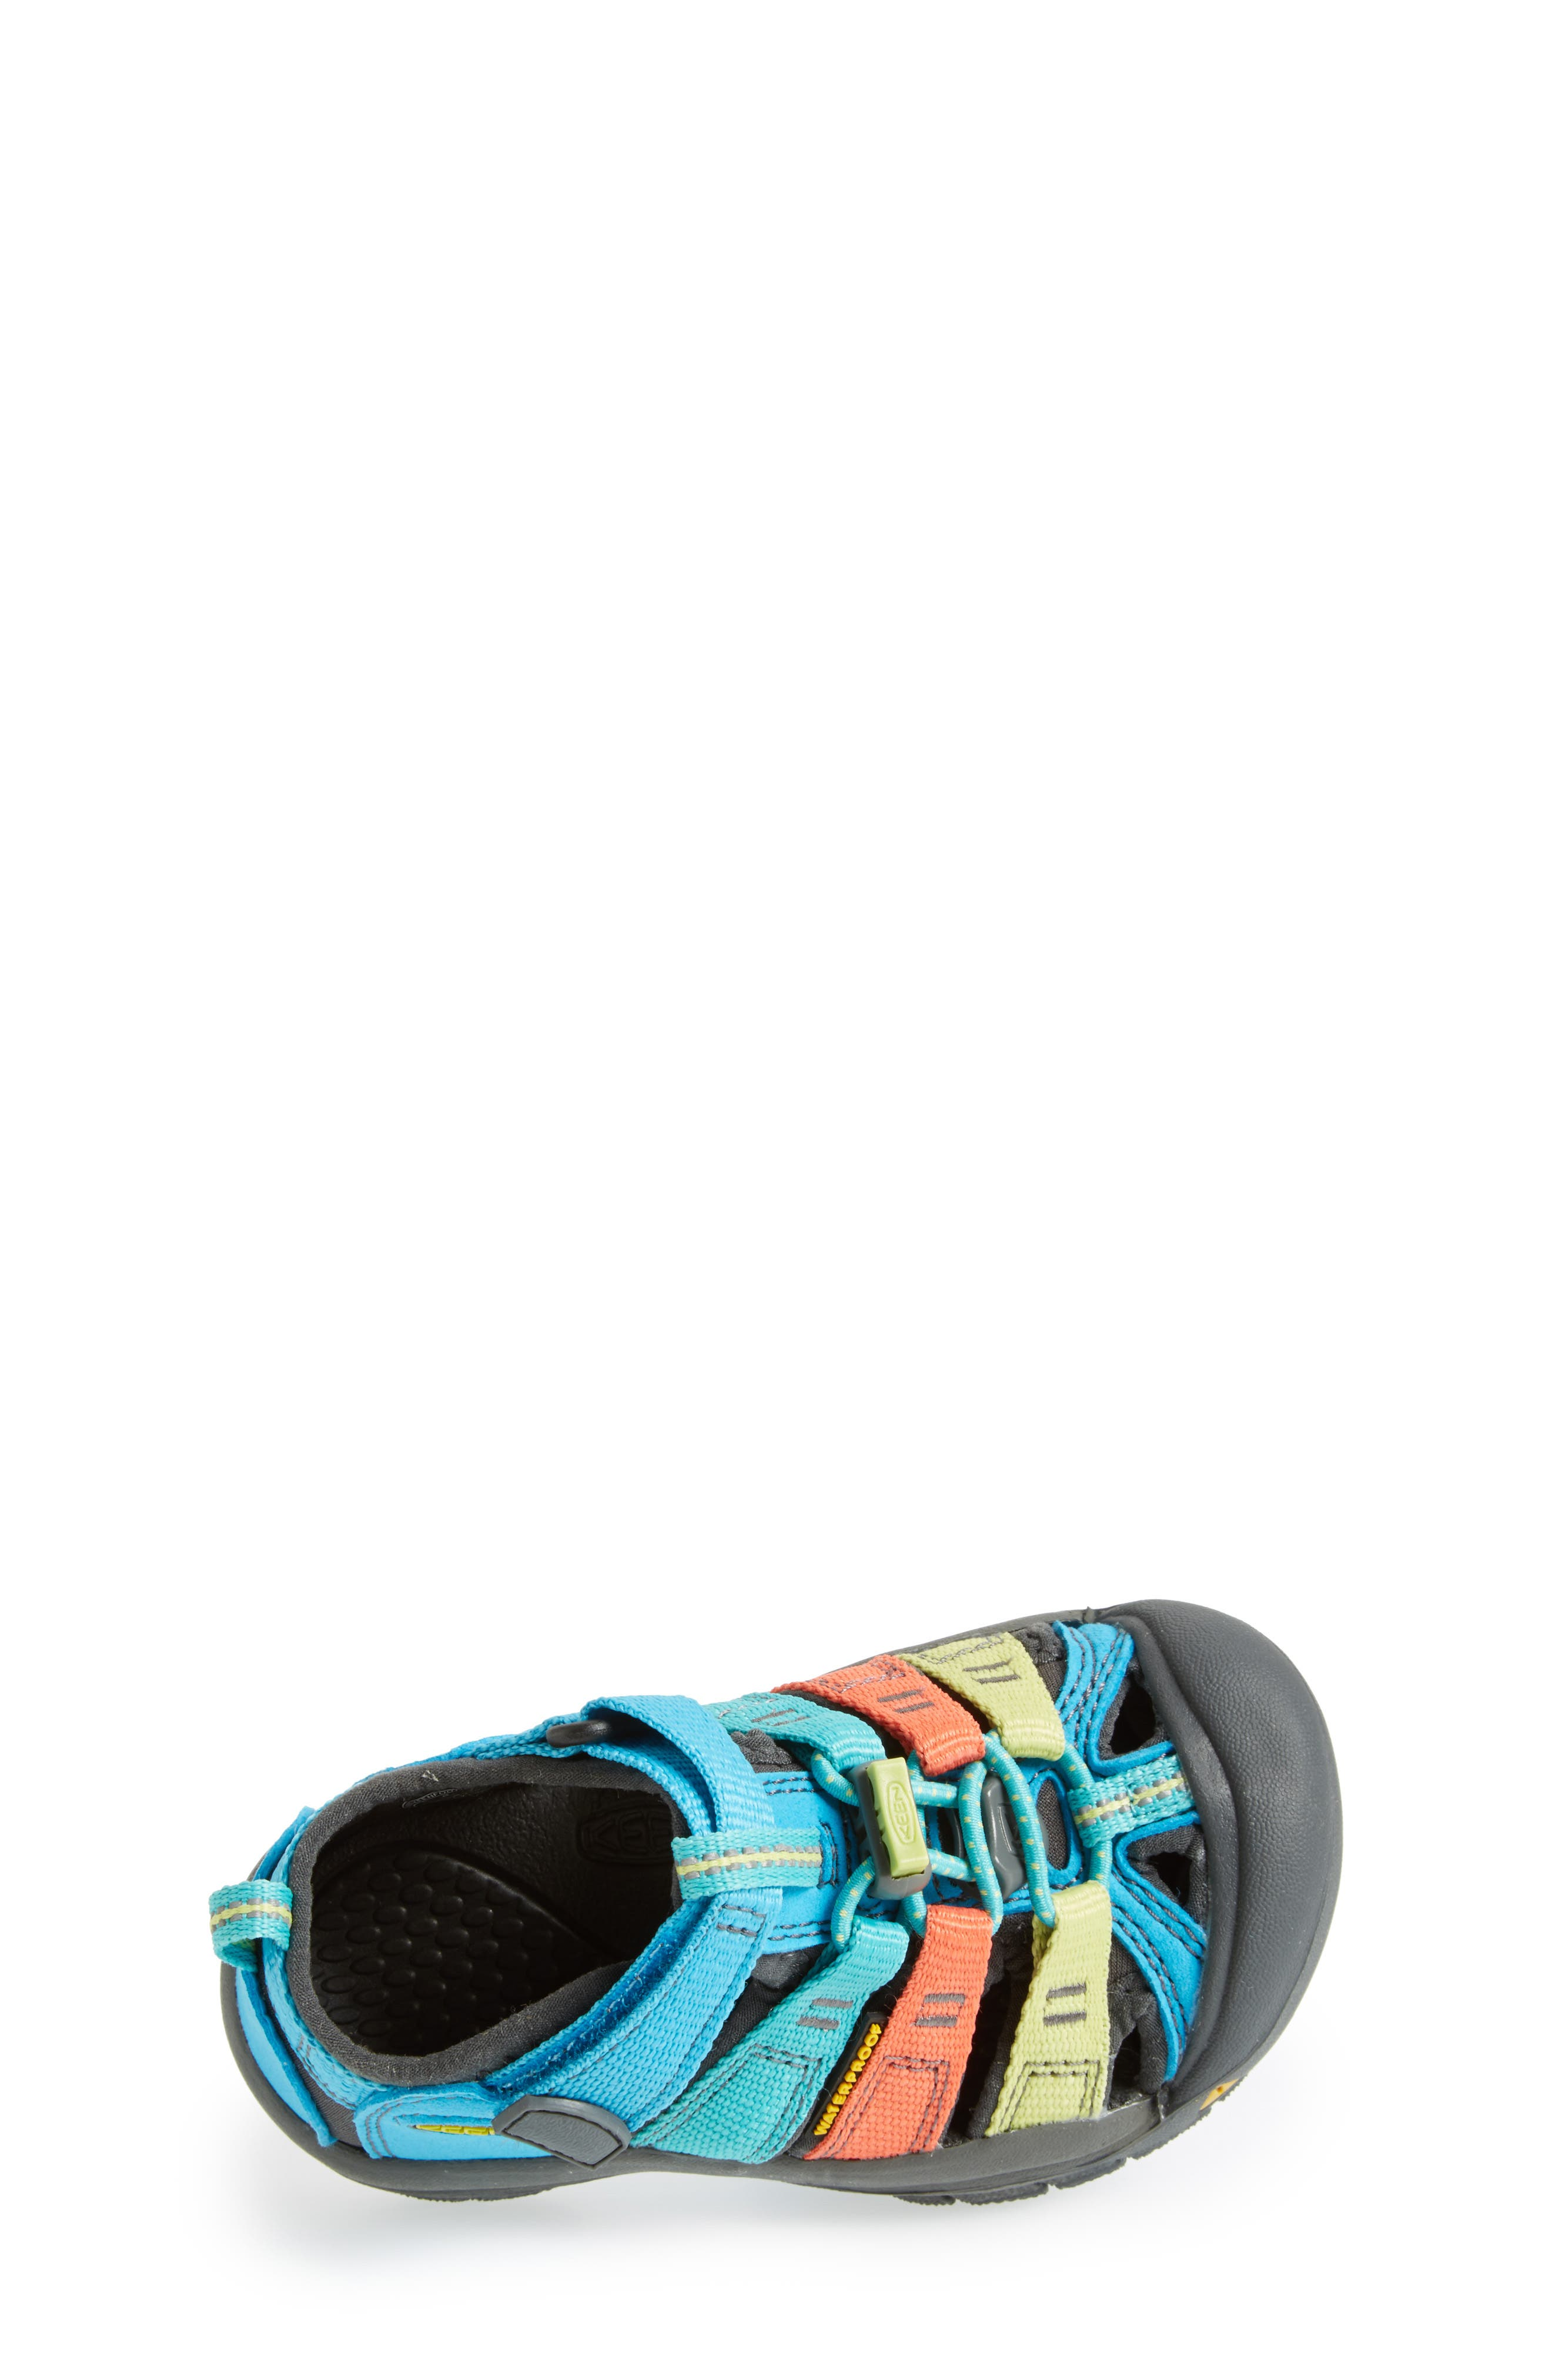 ,                             'Newport H2' Water Friendly Sandal,                             Alternate thumbnail 357, color,                             415